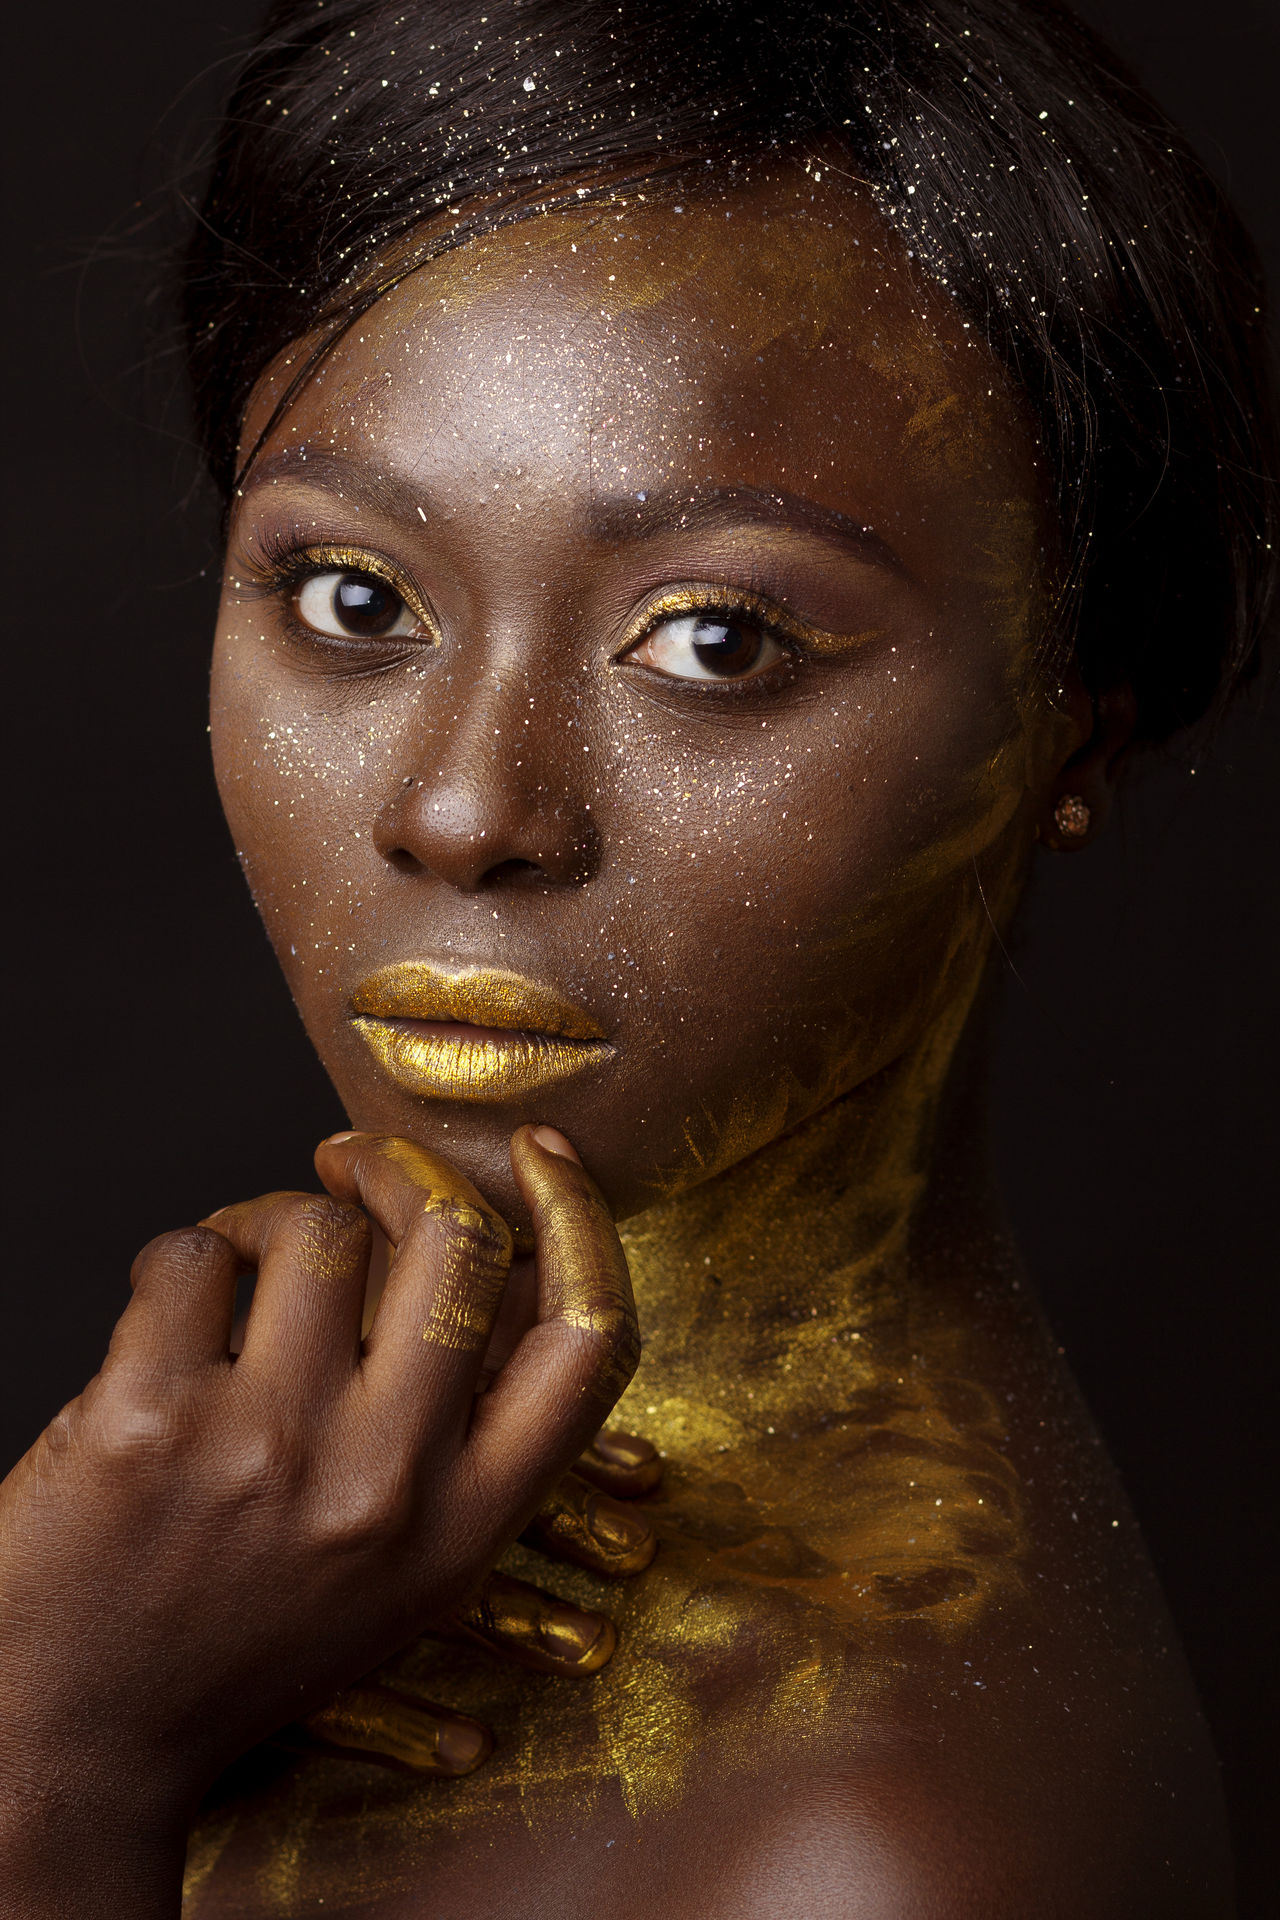 Beauty Editorial  Elégance Fashion Fashion Model Females Glamour Gold Gold Colored Headshot Human Body Part Human Face Looking At Camera Portrait Shine Shiny Studio Shot Yellow